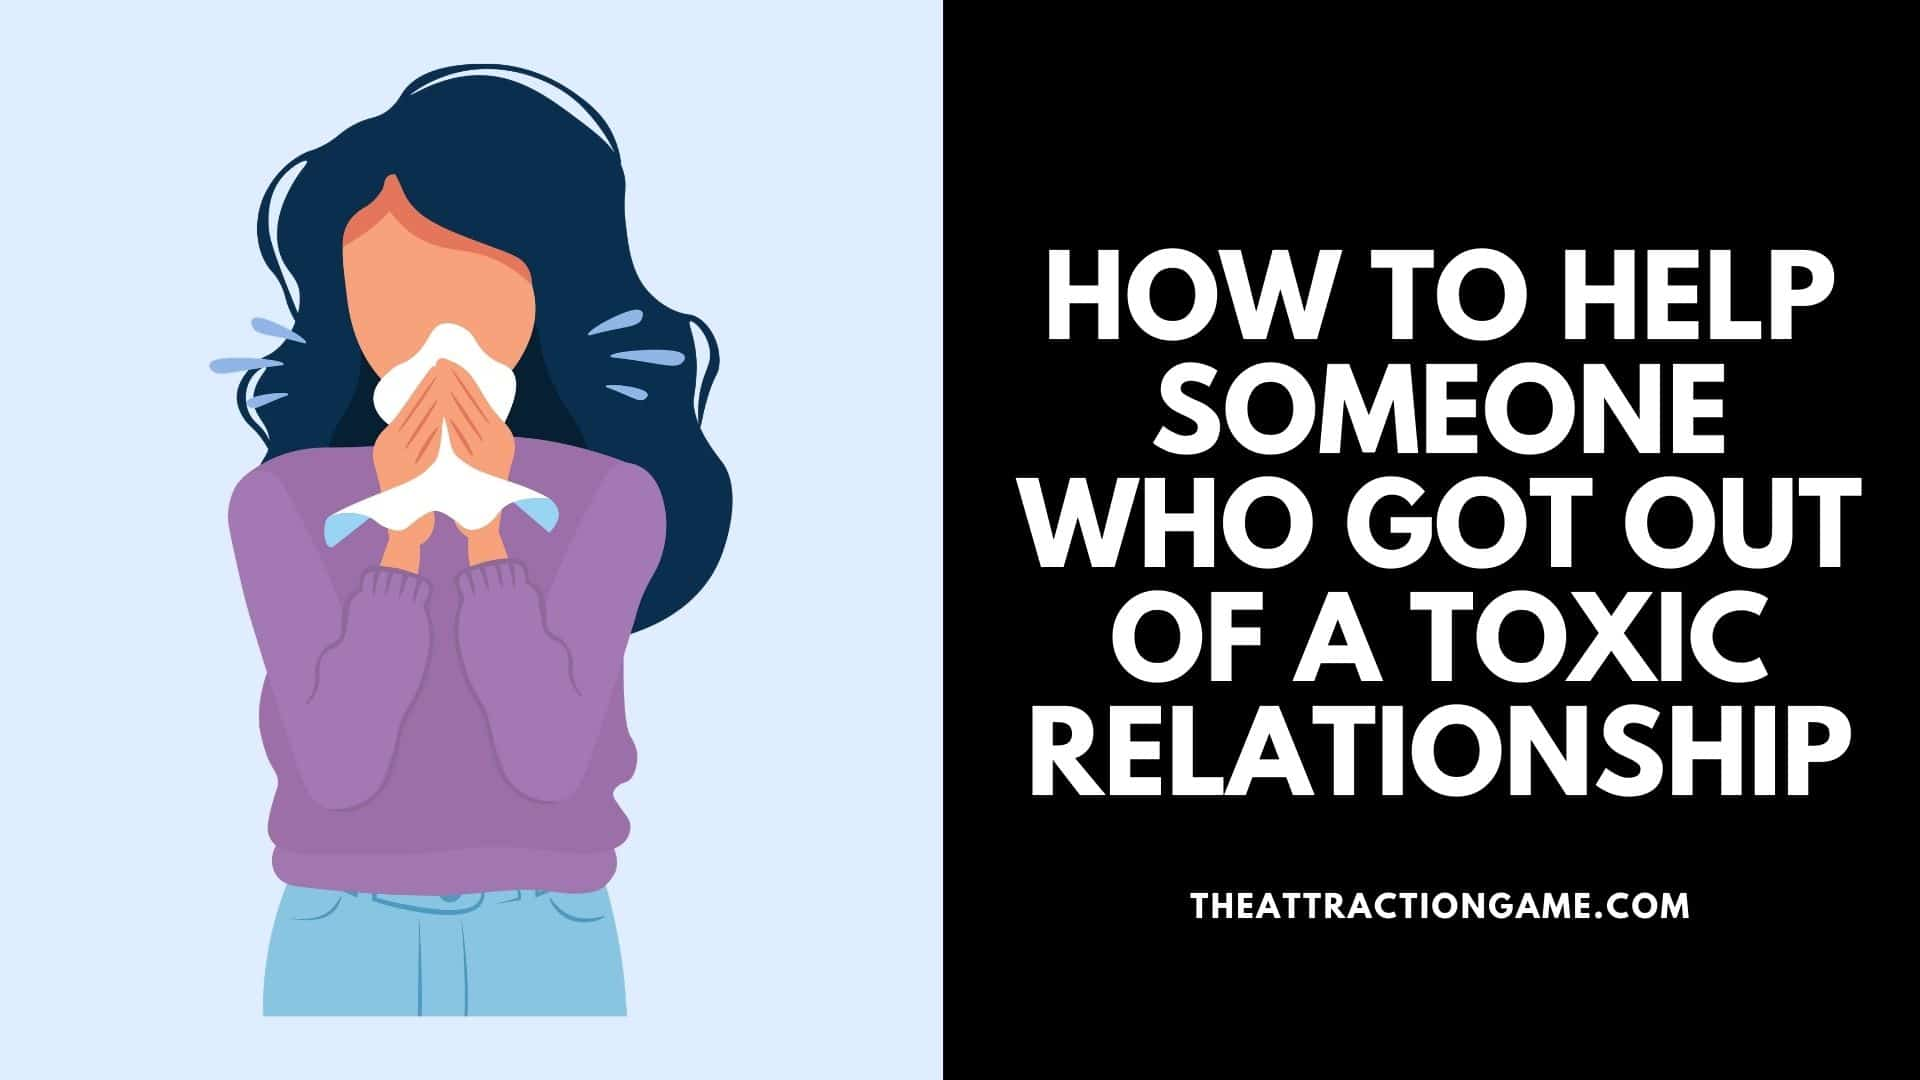 help someone who got out of a relationship, tips on helping someone in a toxic relationship, how to help someone who left a toxic relationship